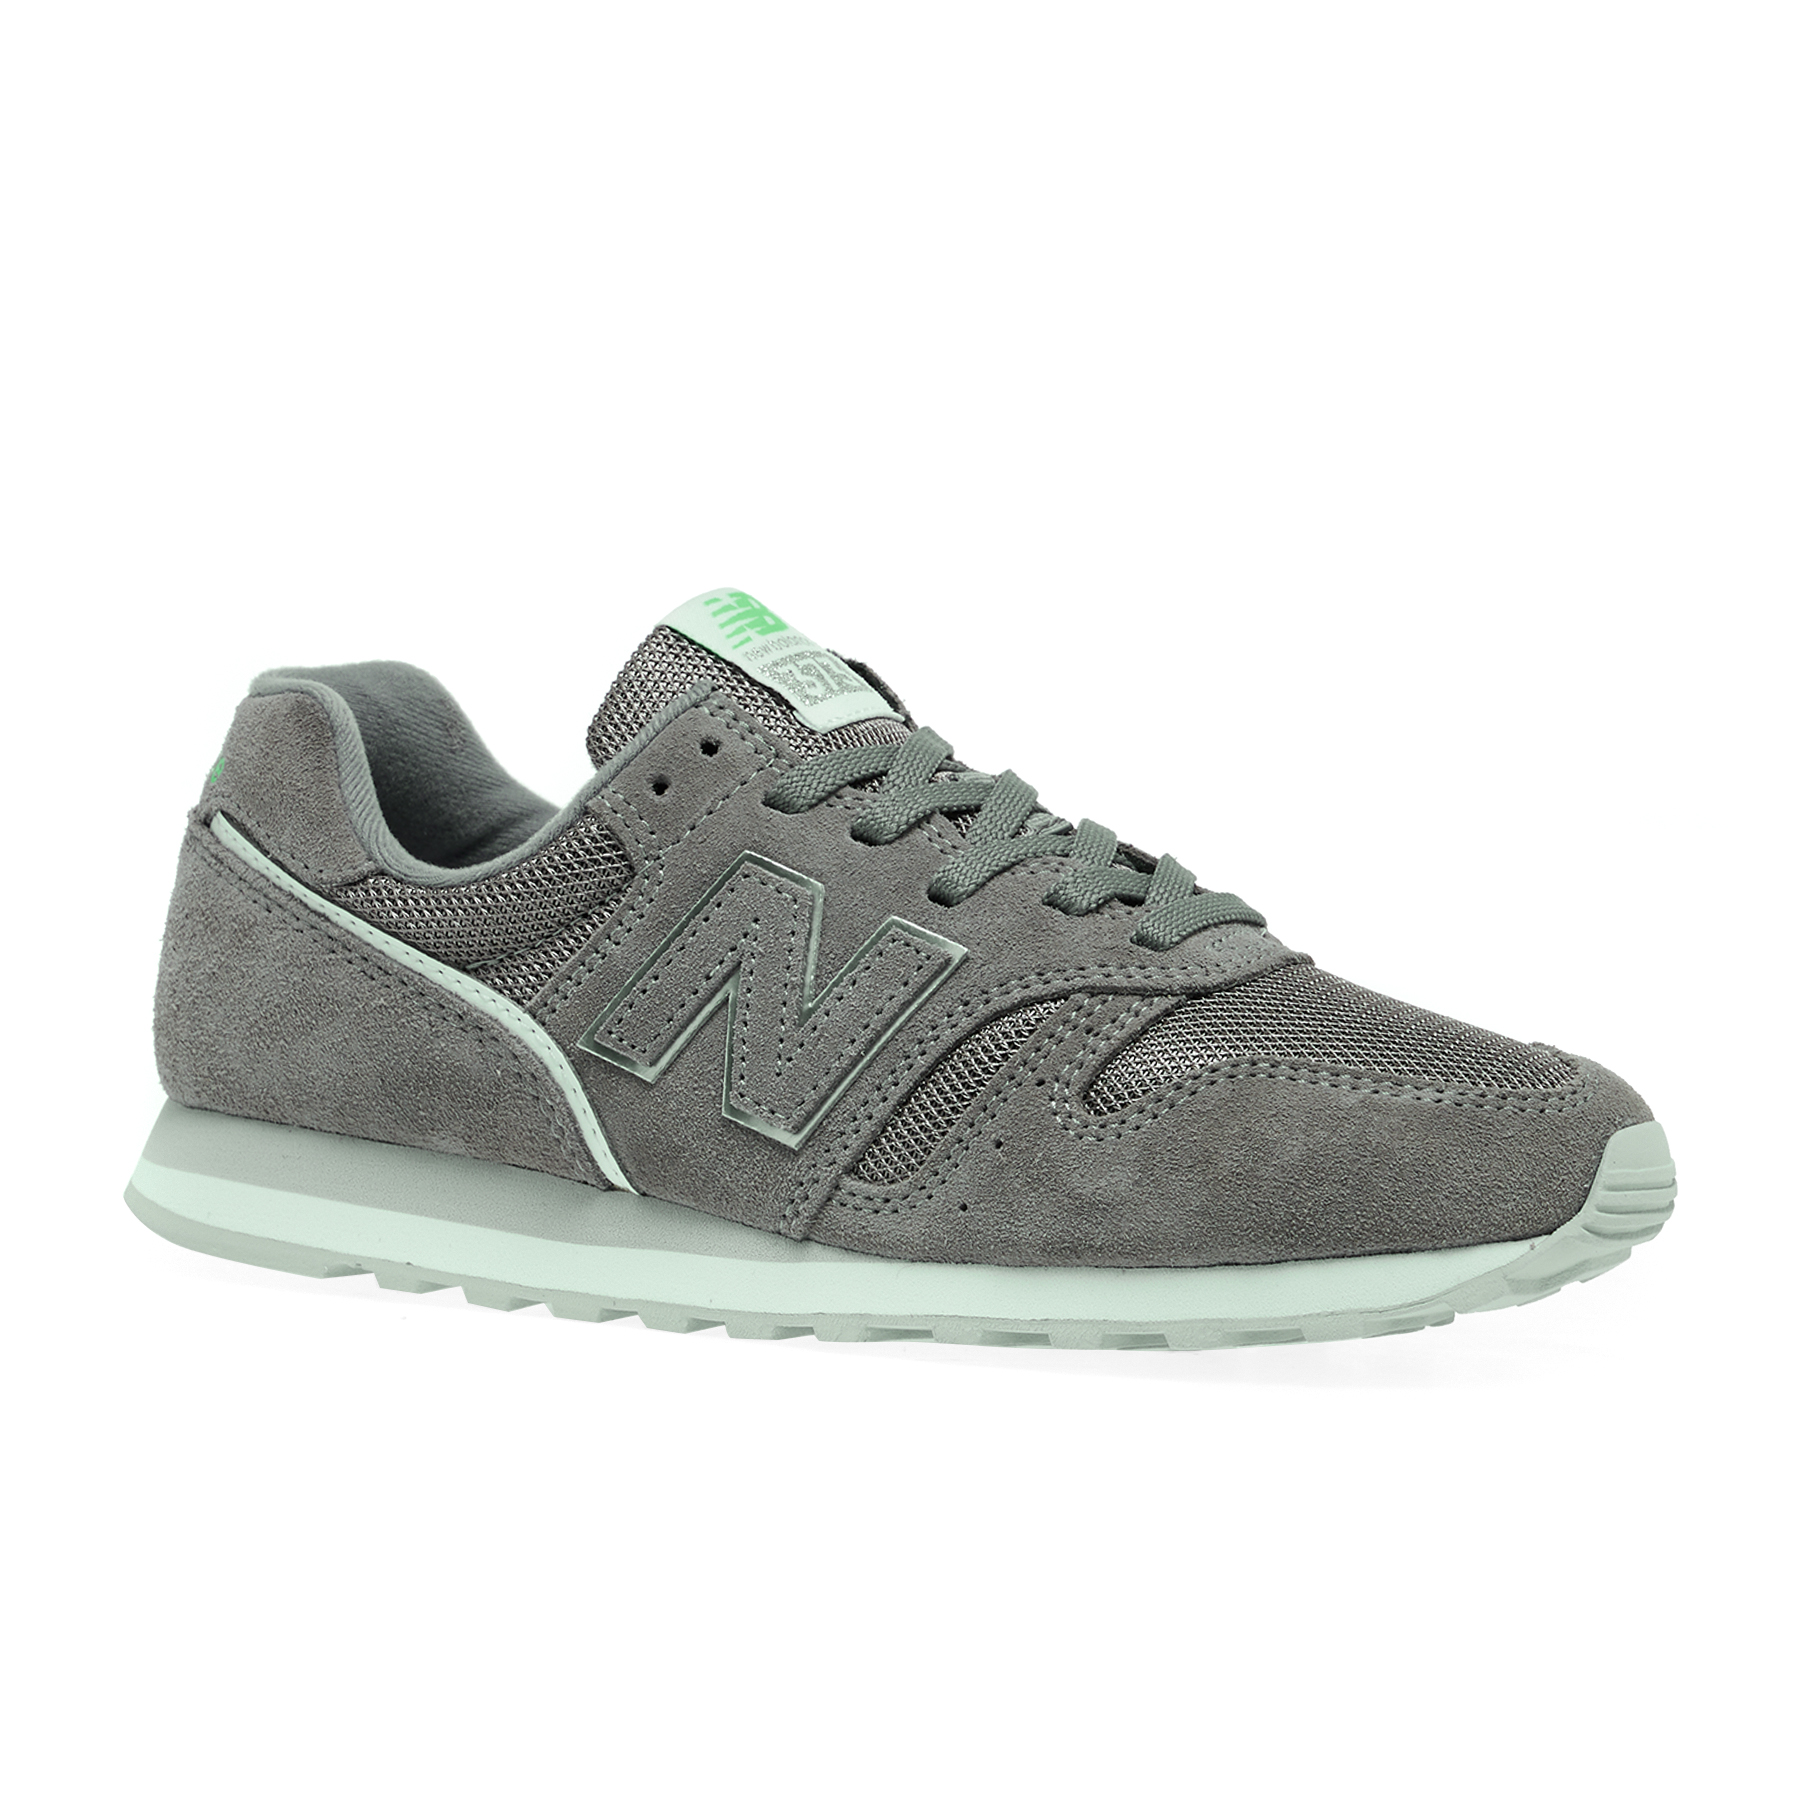 New Balance Wl373 Womens Shoes   Free Delivery Options